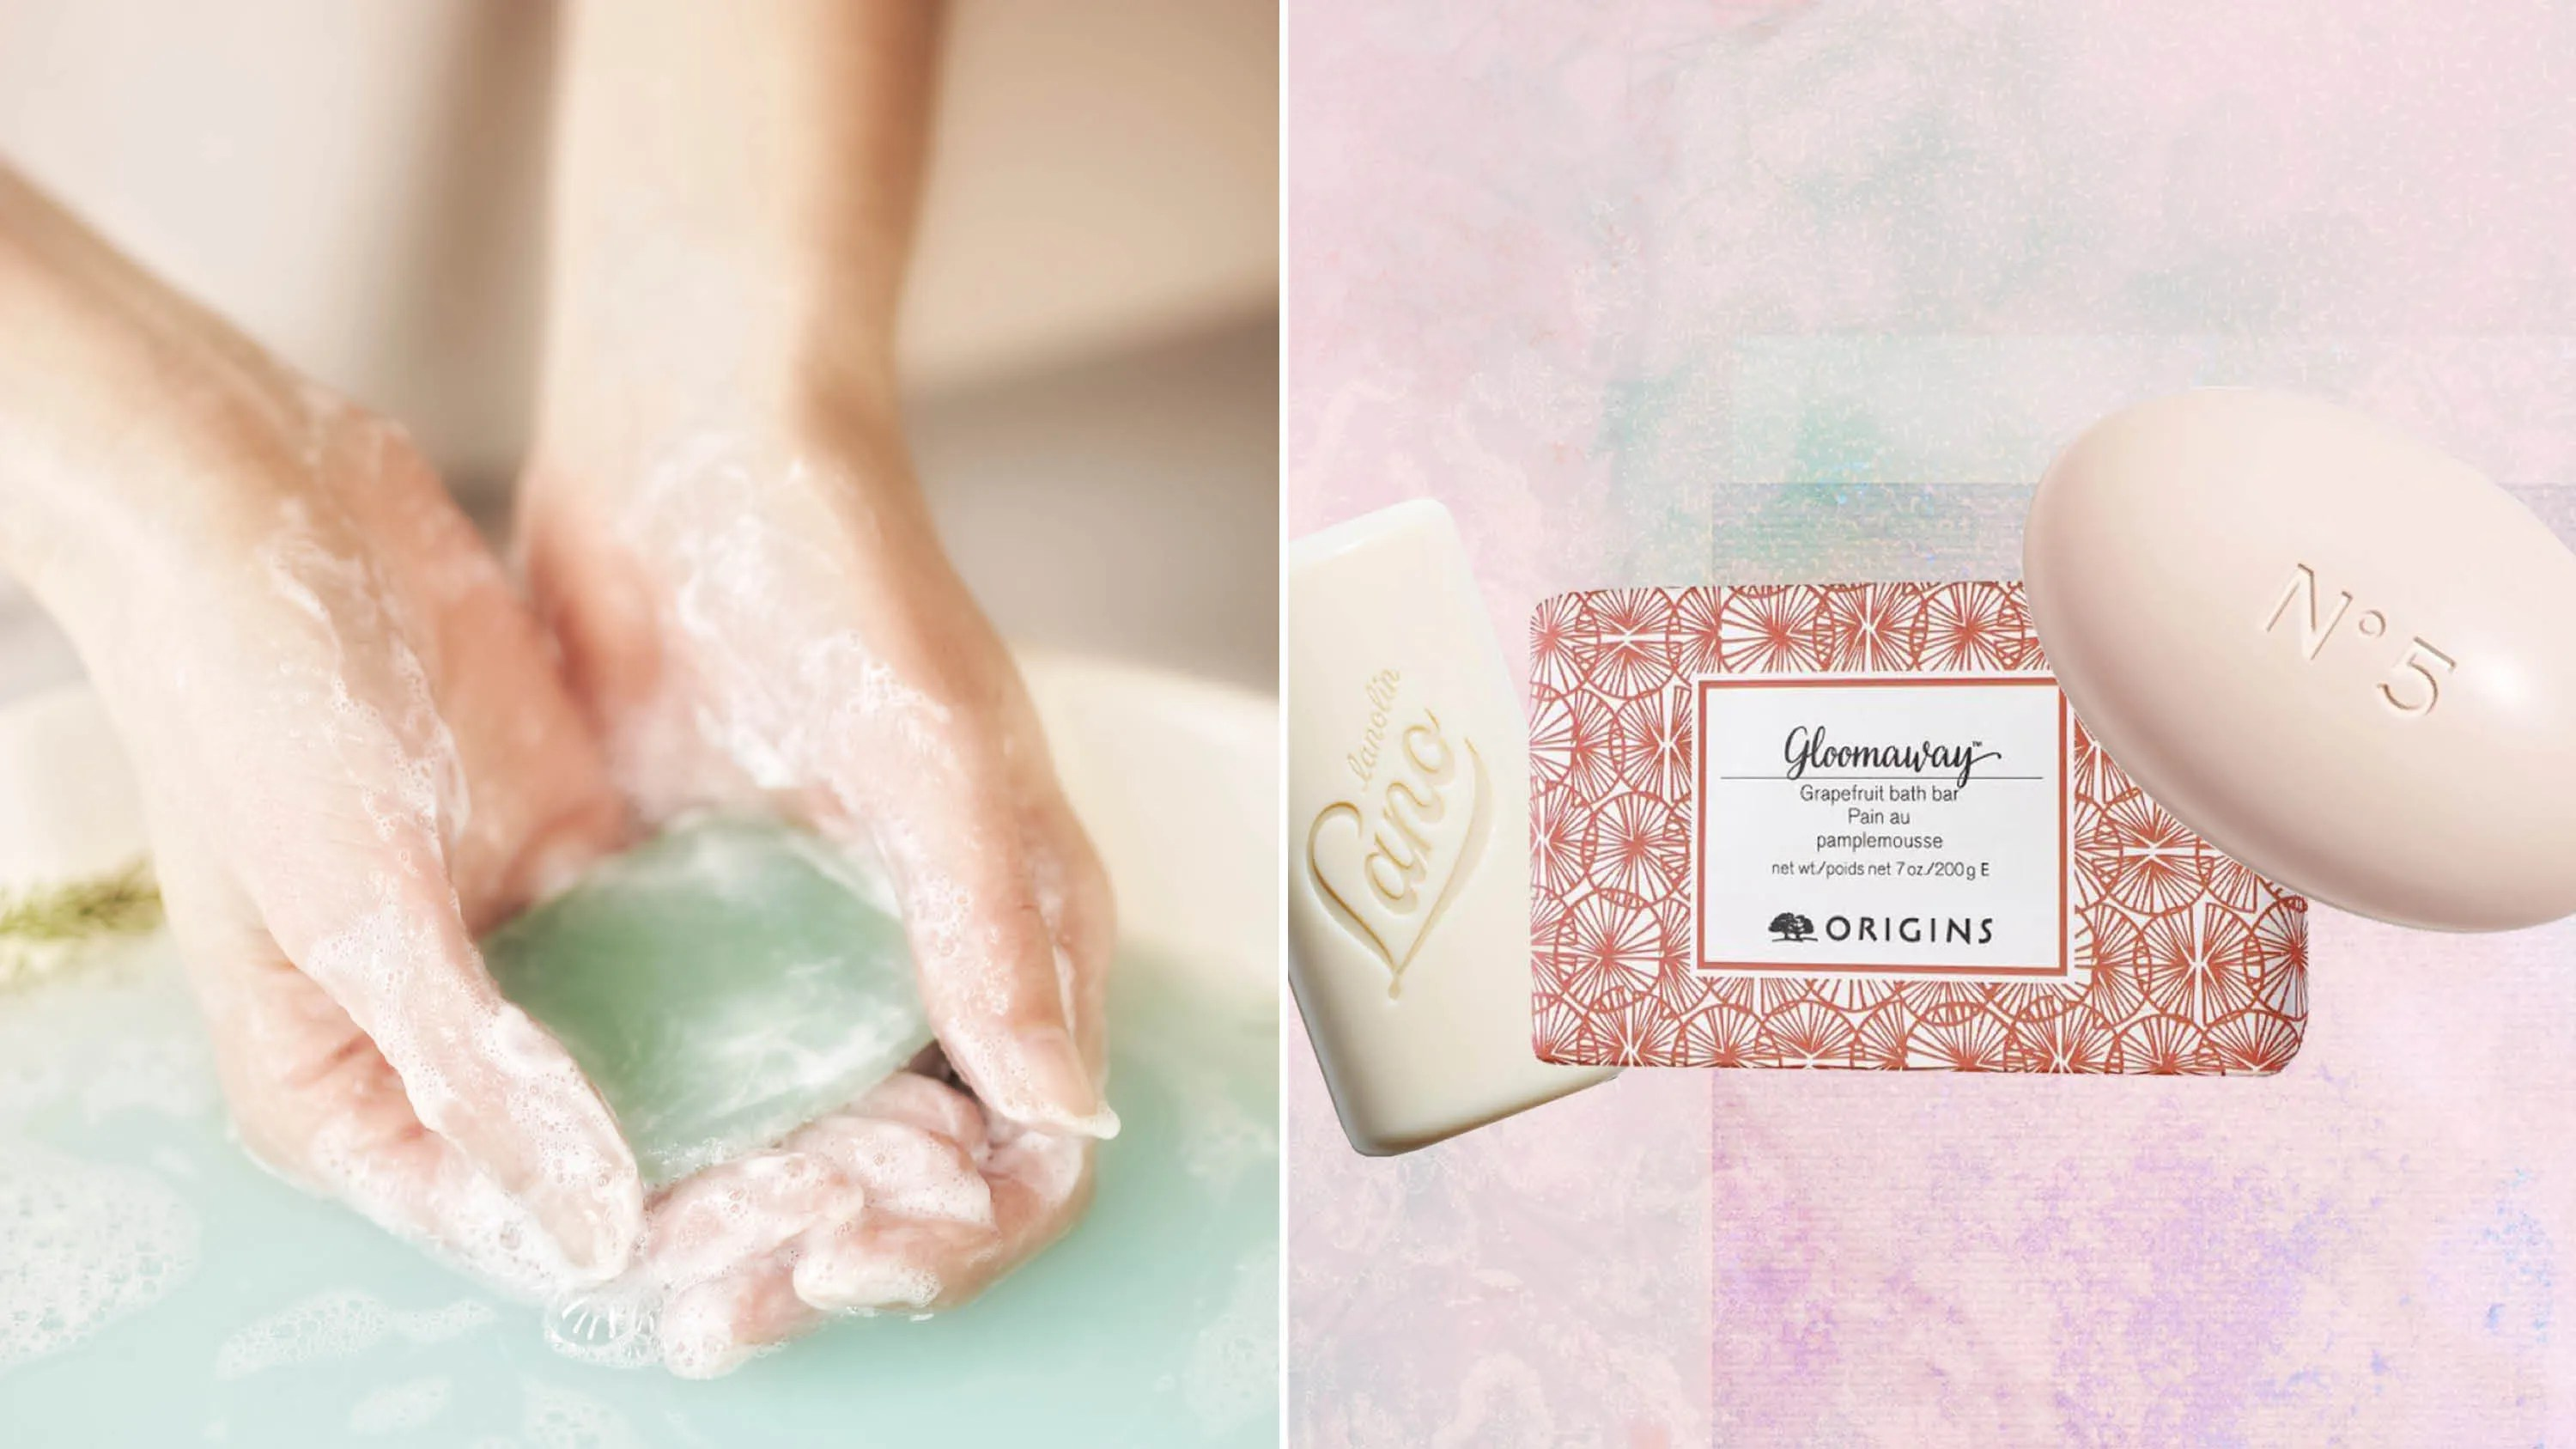 15 Best Bar Soaps To Lather Up With During Your Next